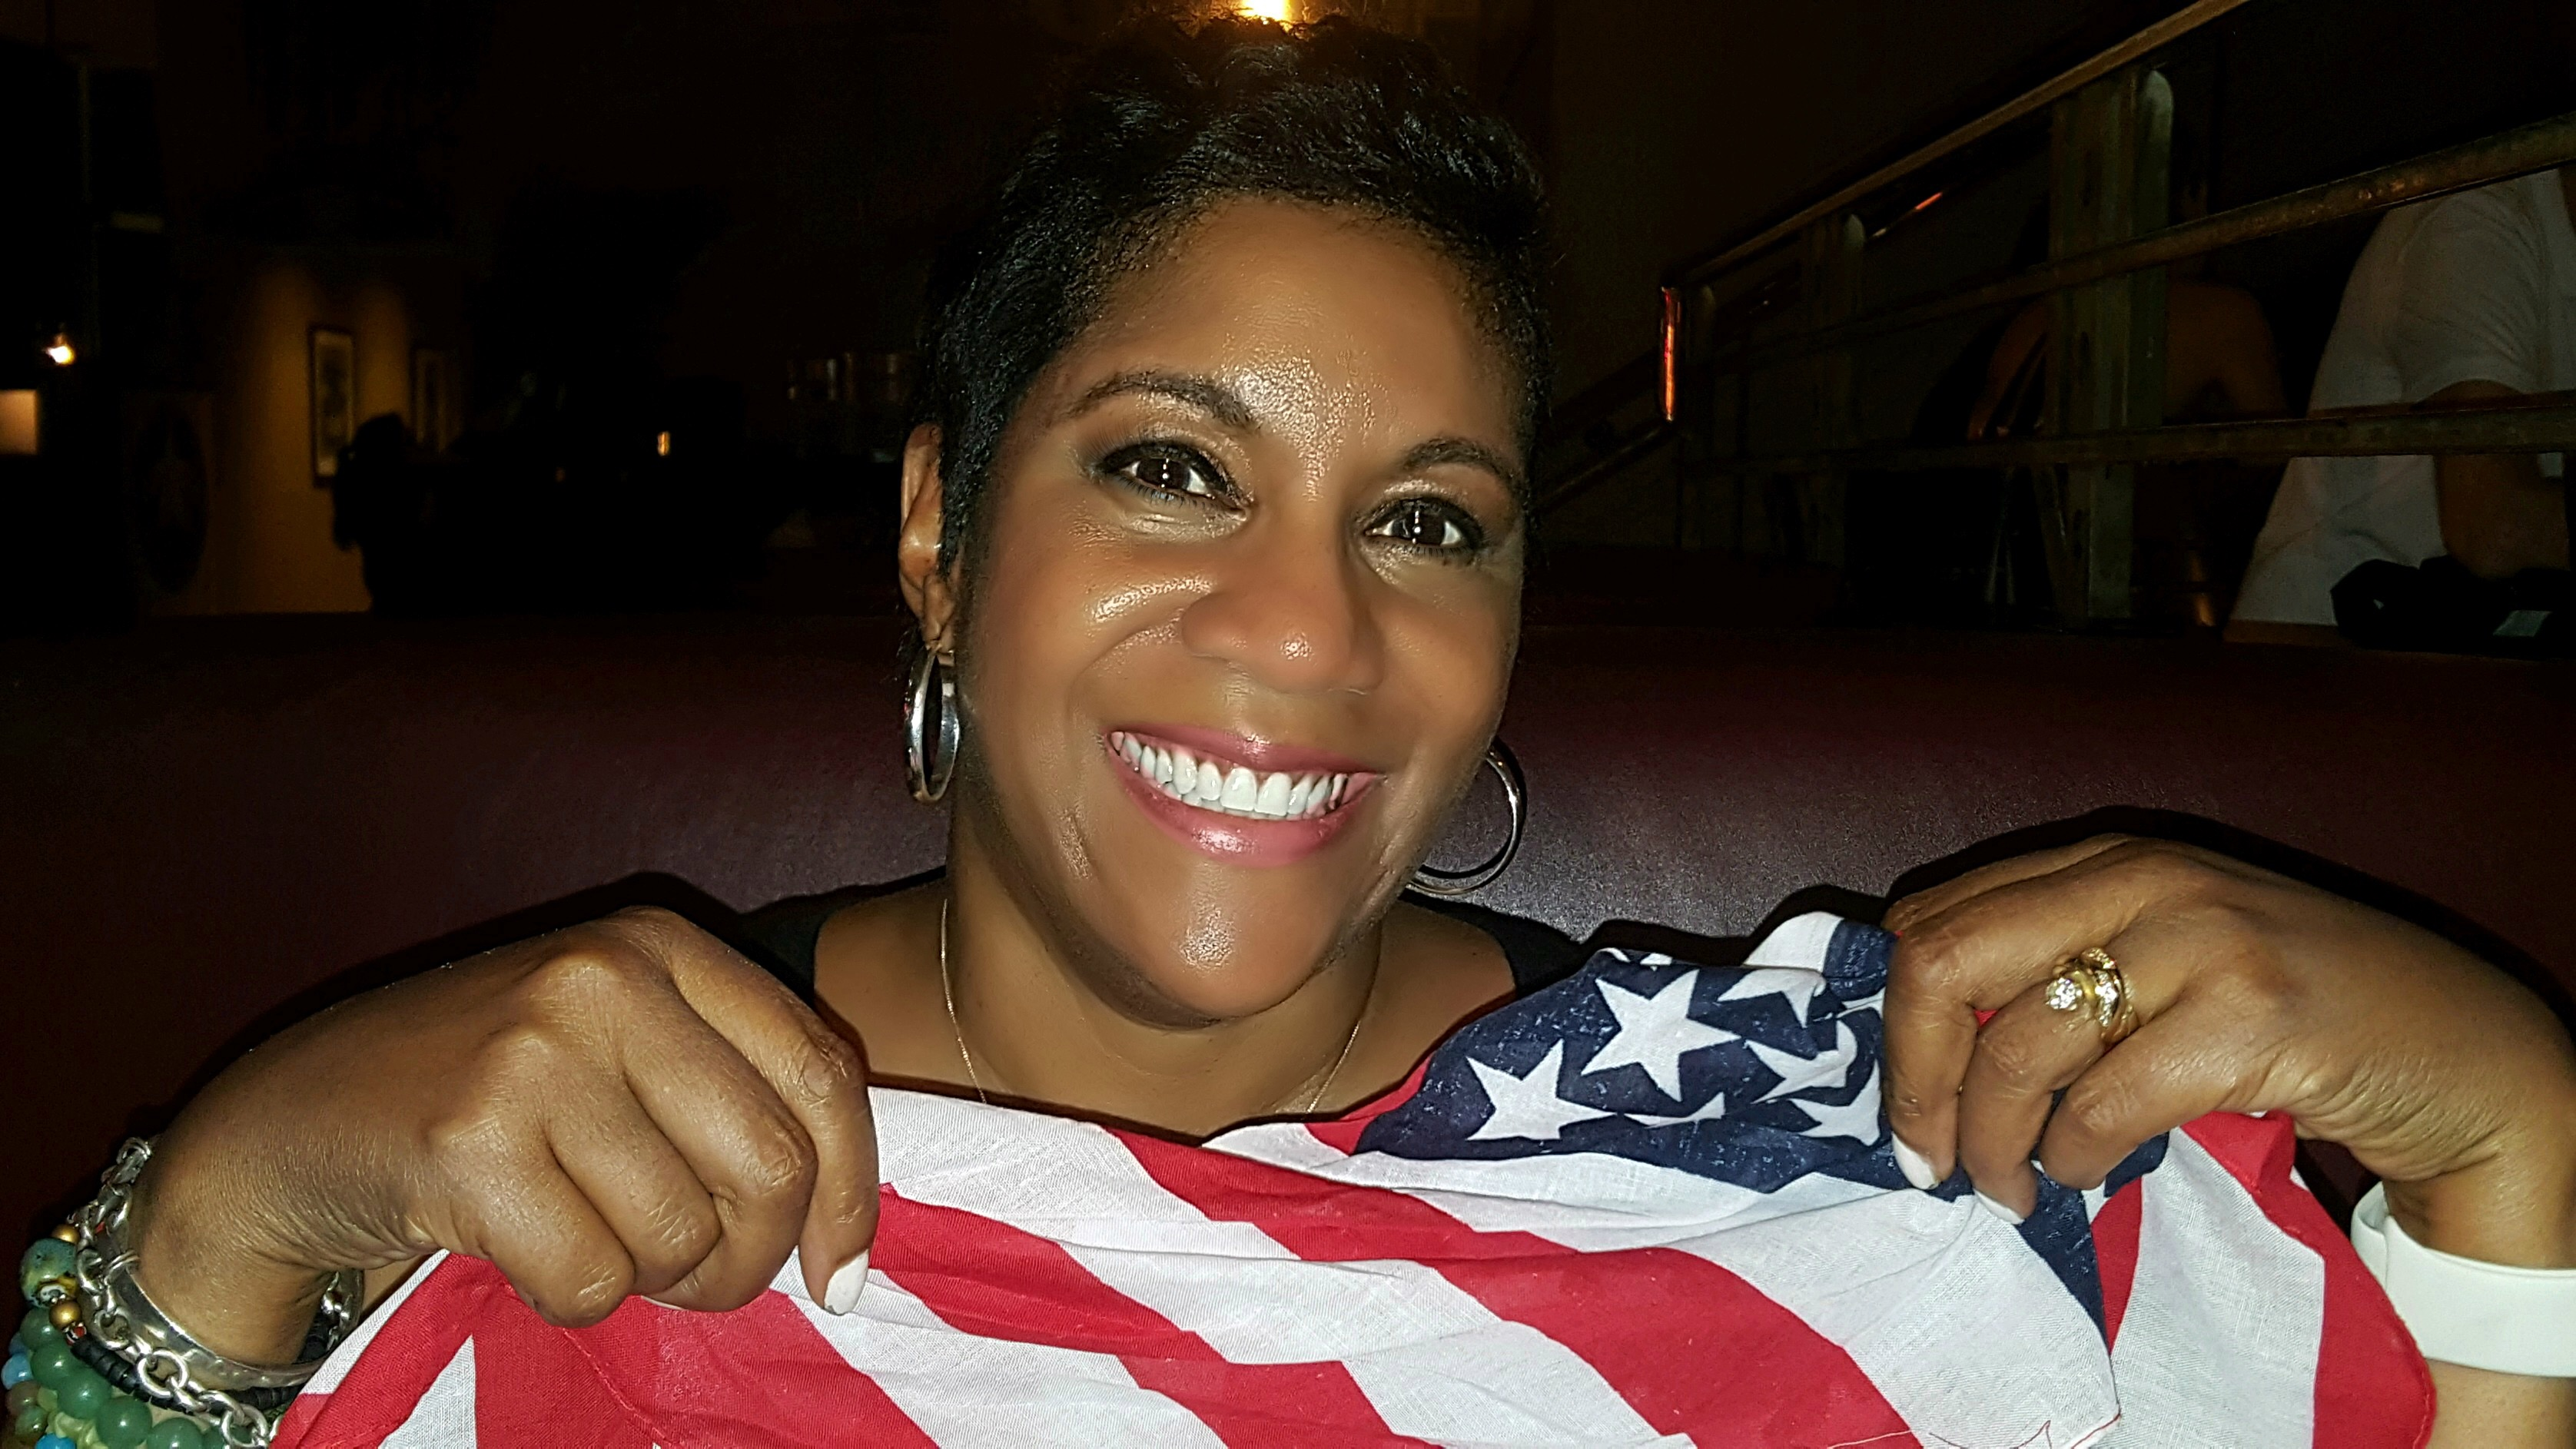 Smiling with the American flag